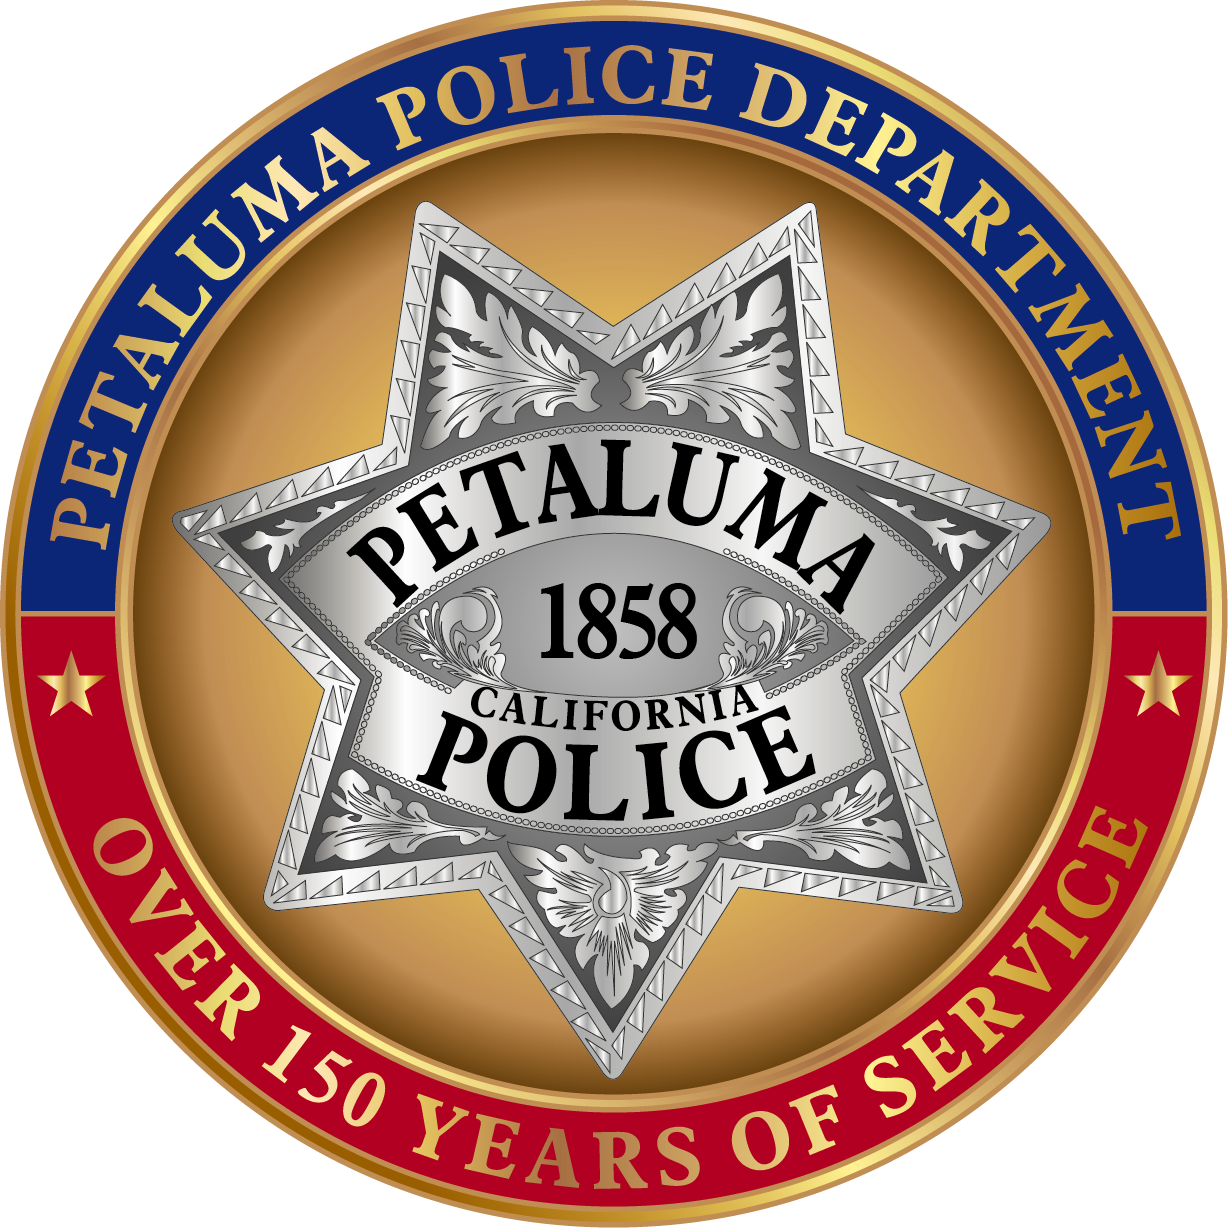 Petaluma Police Department - 690 Crime and Safety updates